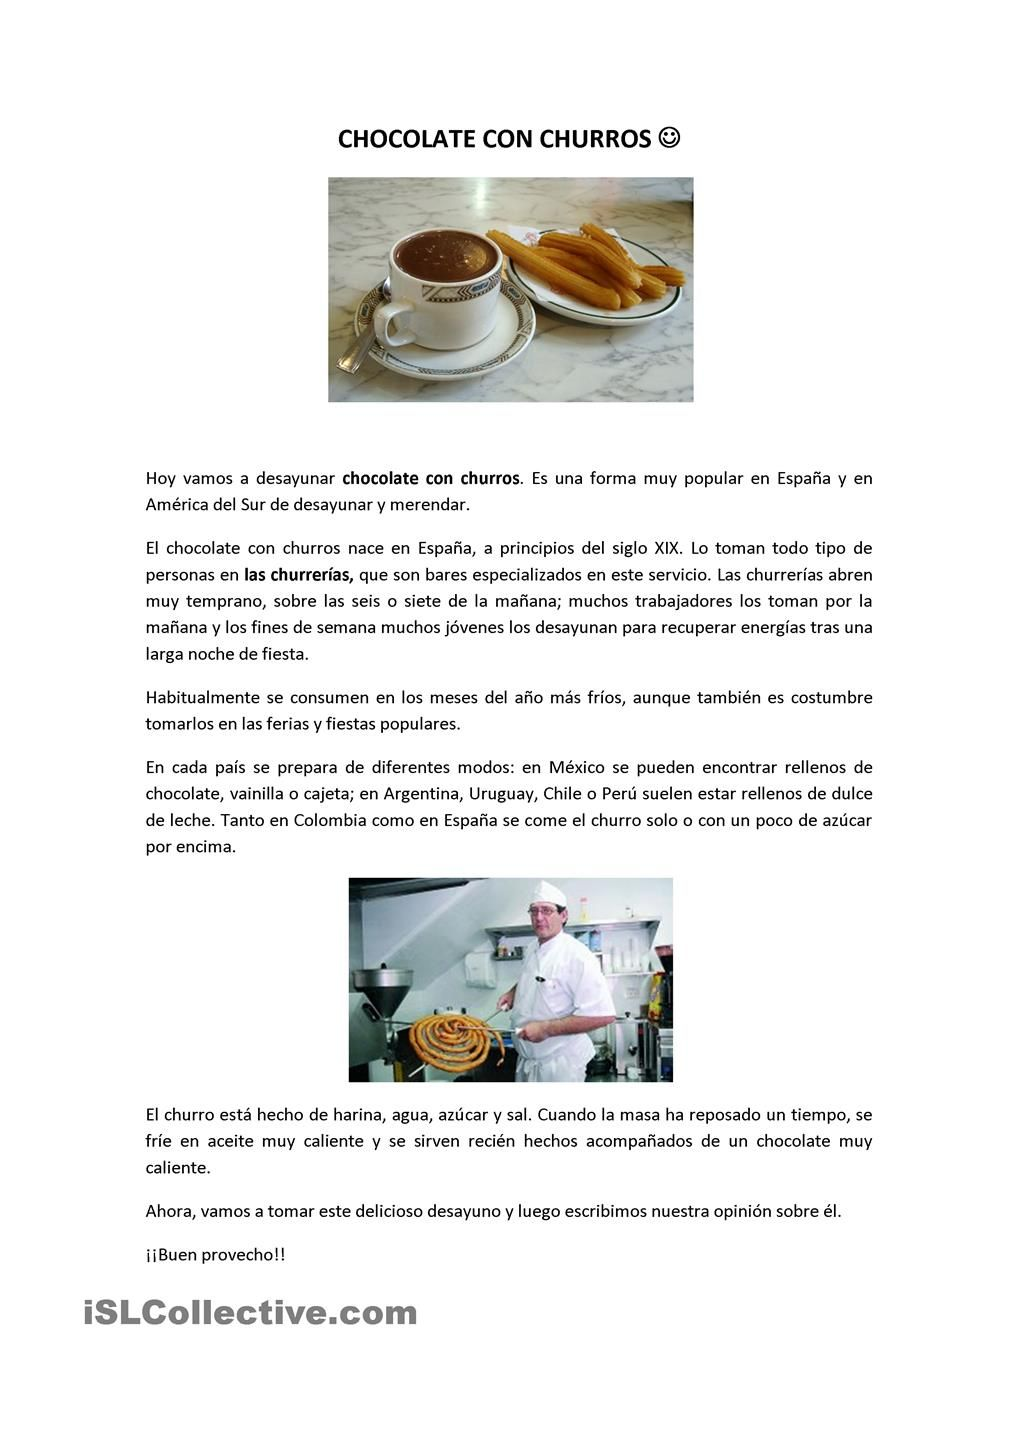 Workbooks spanish food worksheets : Chocolate con churros | Lectura | Pinterest | Churros, Spanish ...